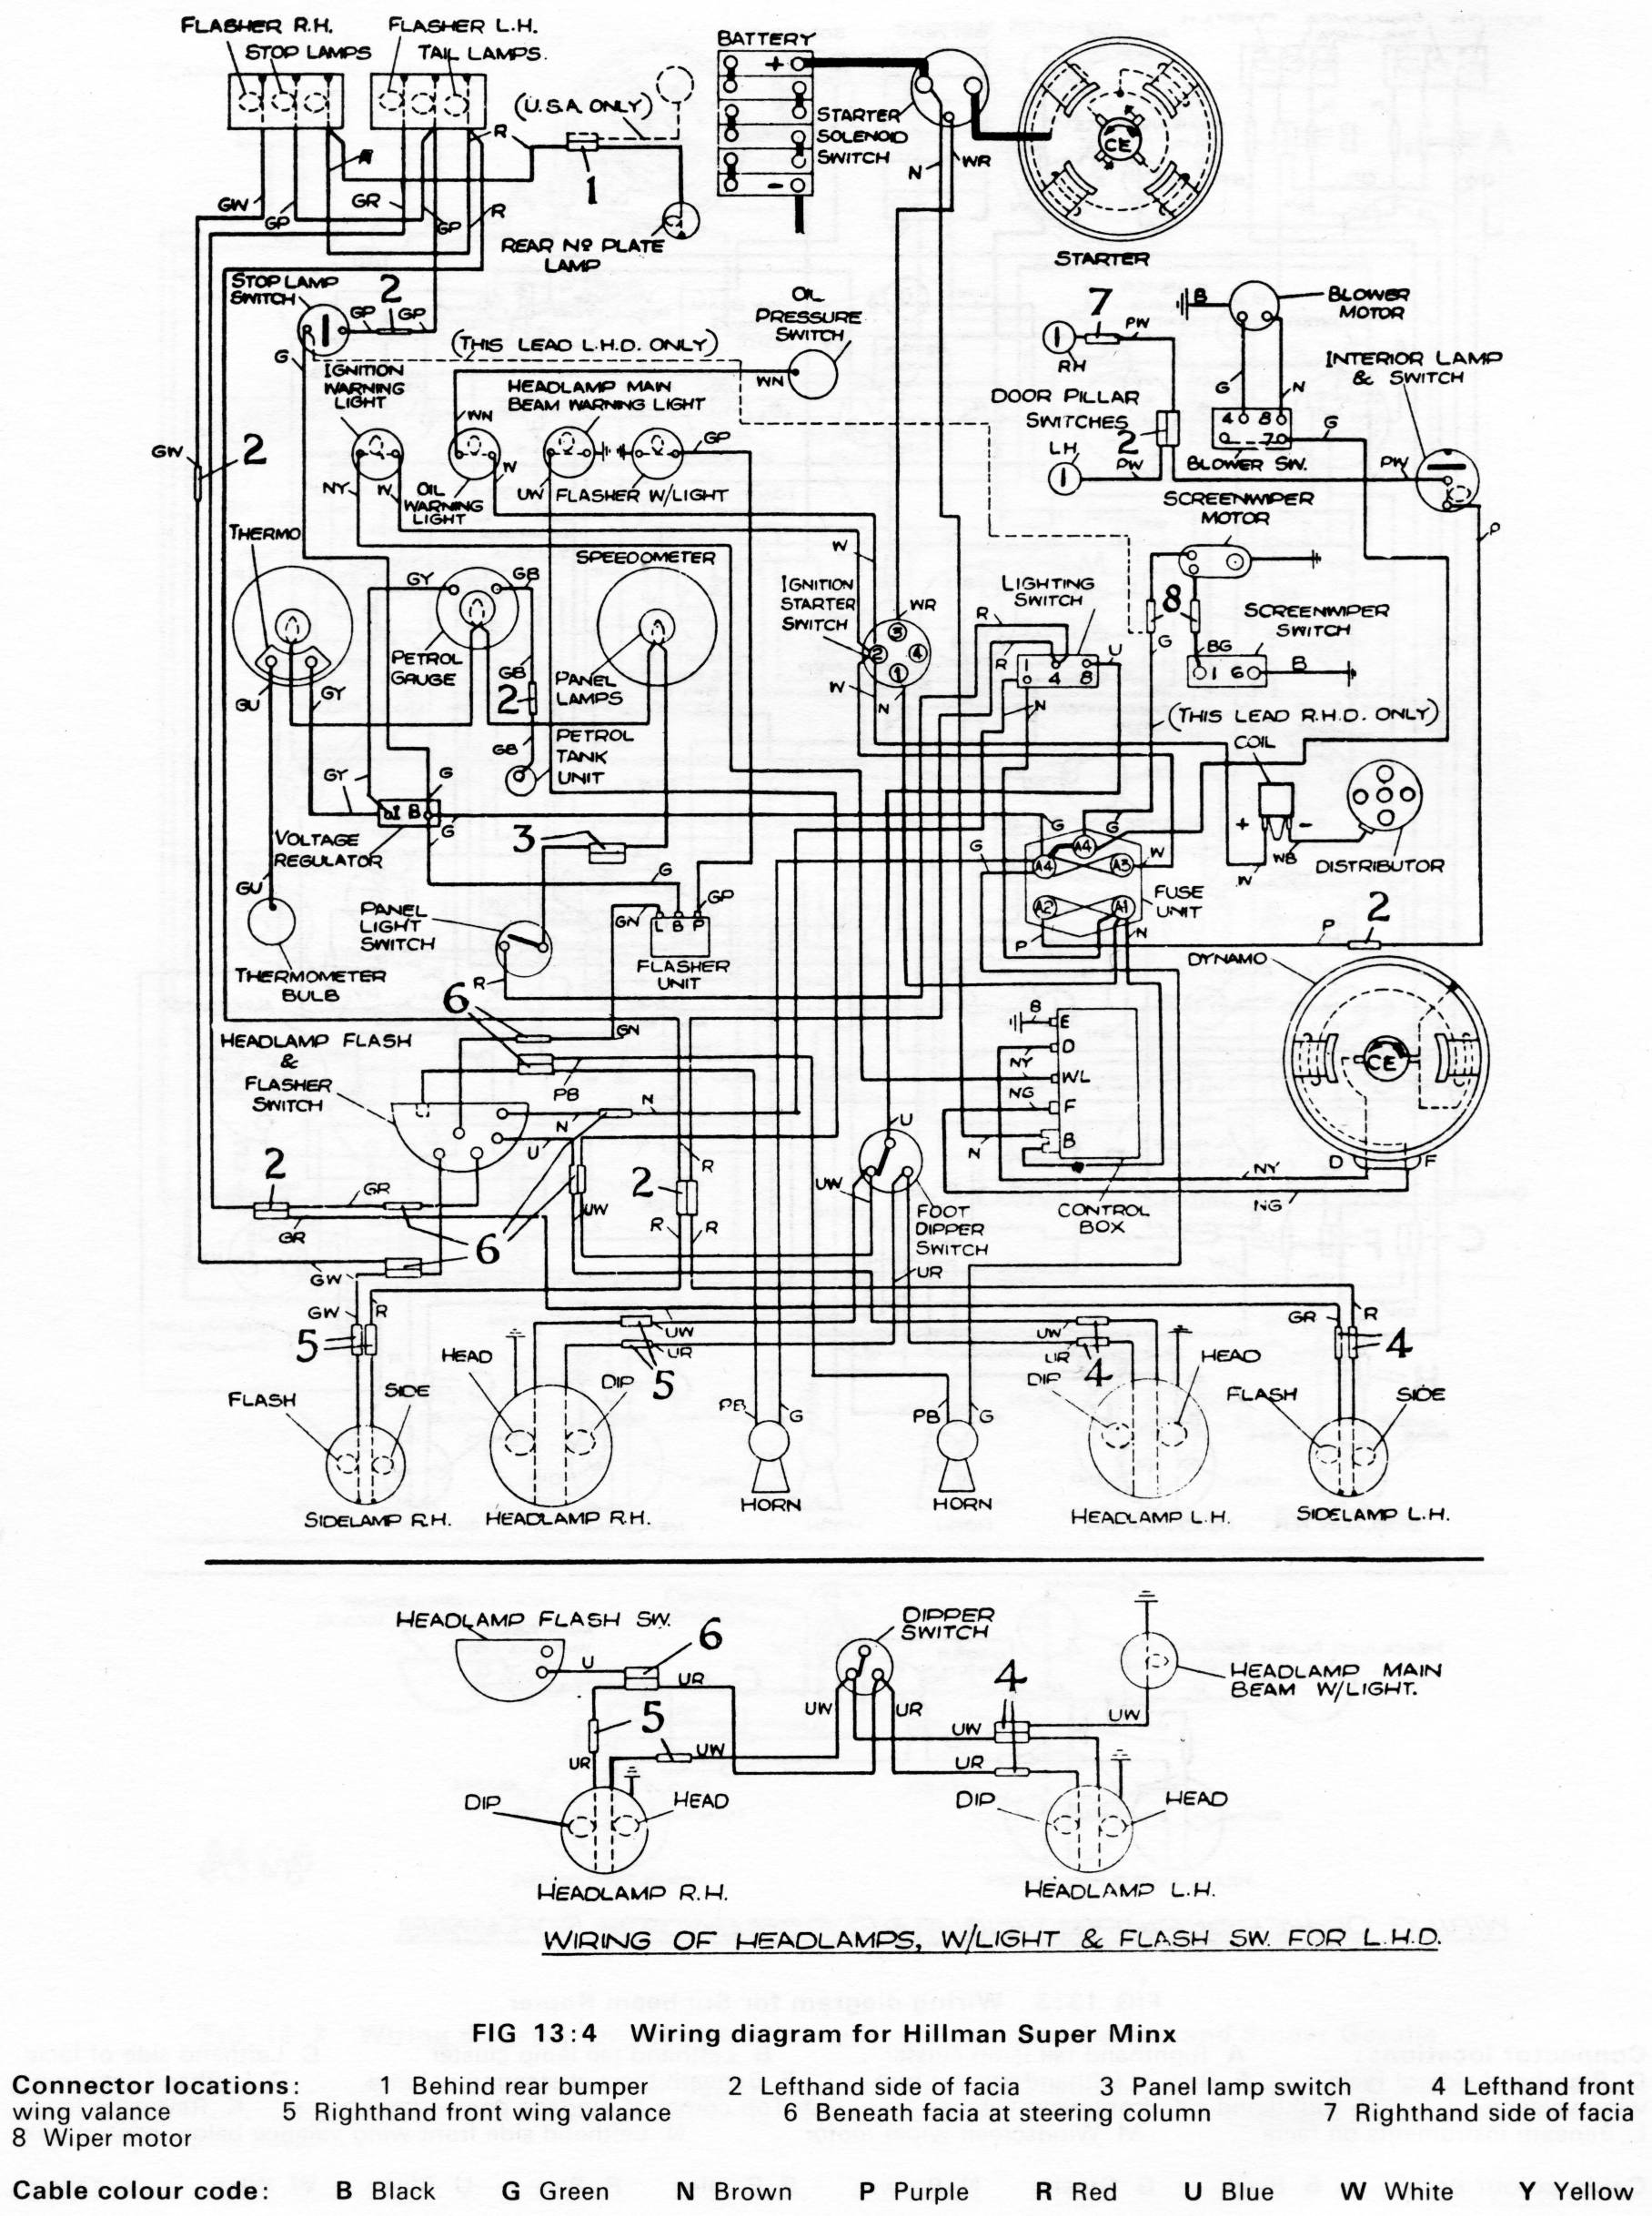 Hillman Car Club of South Australia – Wiring Diagrams on sincgars radio configurations diagrams, series and parallel circuits diagrams, pinout diagrams, internet of things diagrams, switch diagrams, troubleshooting diagrams, electronic circuit diagrams, honda motorcycle repair diagrams, lighting diagrams, gmc fuse box diagrams, battery diagrams, smart car diagrams, led circuit diagrams, engine diagrams, transformer diagrams, hvac diagrams, electrical diagrams, friendship bracelet diagrams, motor diagrams,